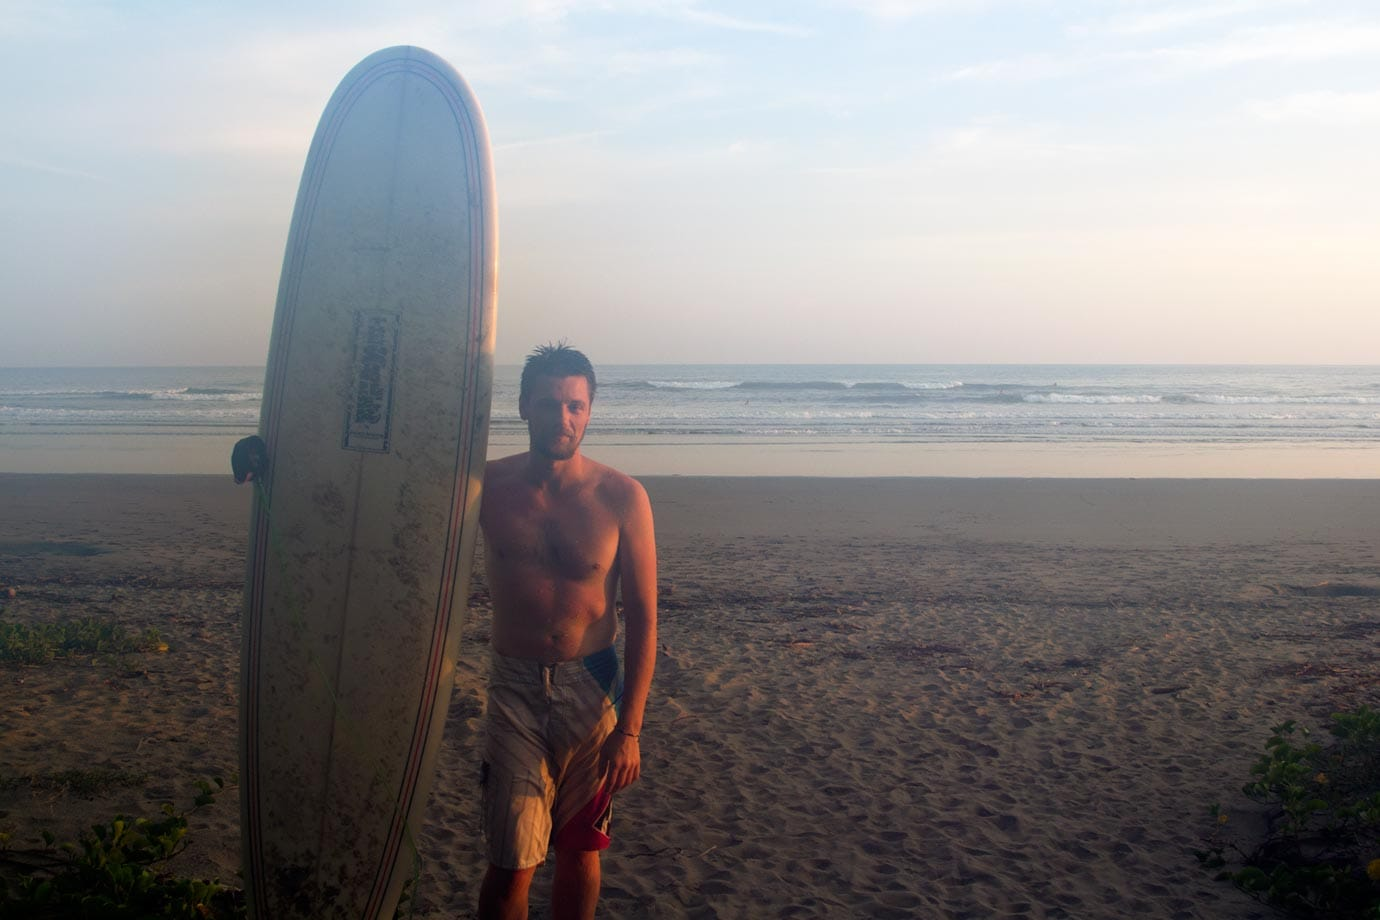 Brian surfing on a hazy morning